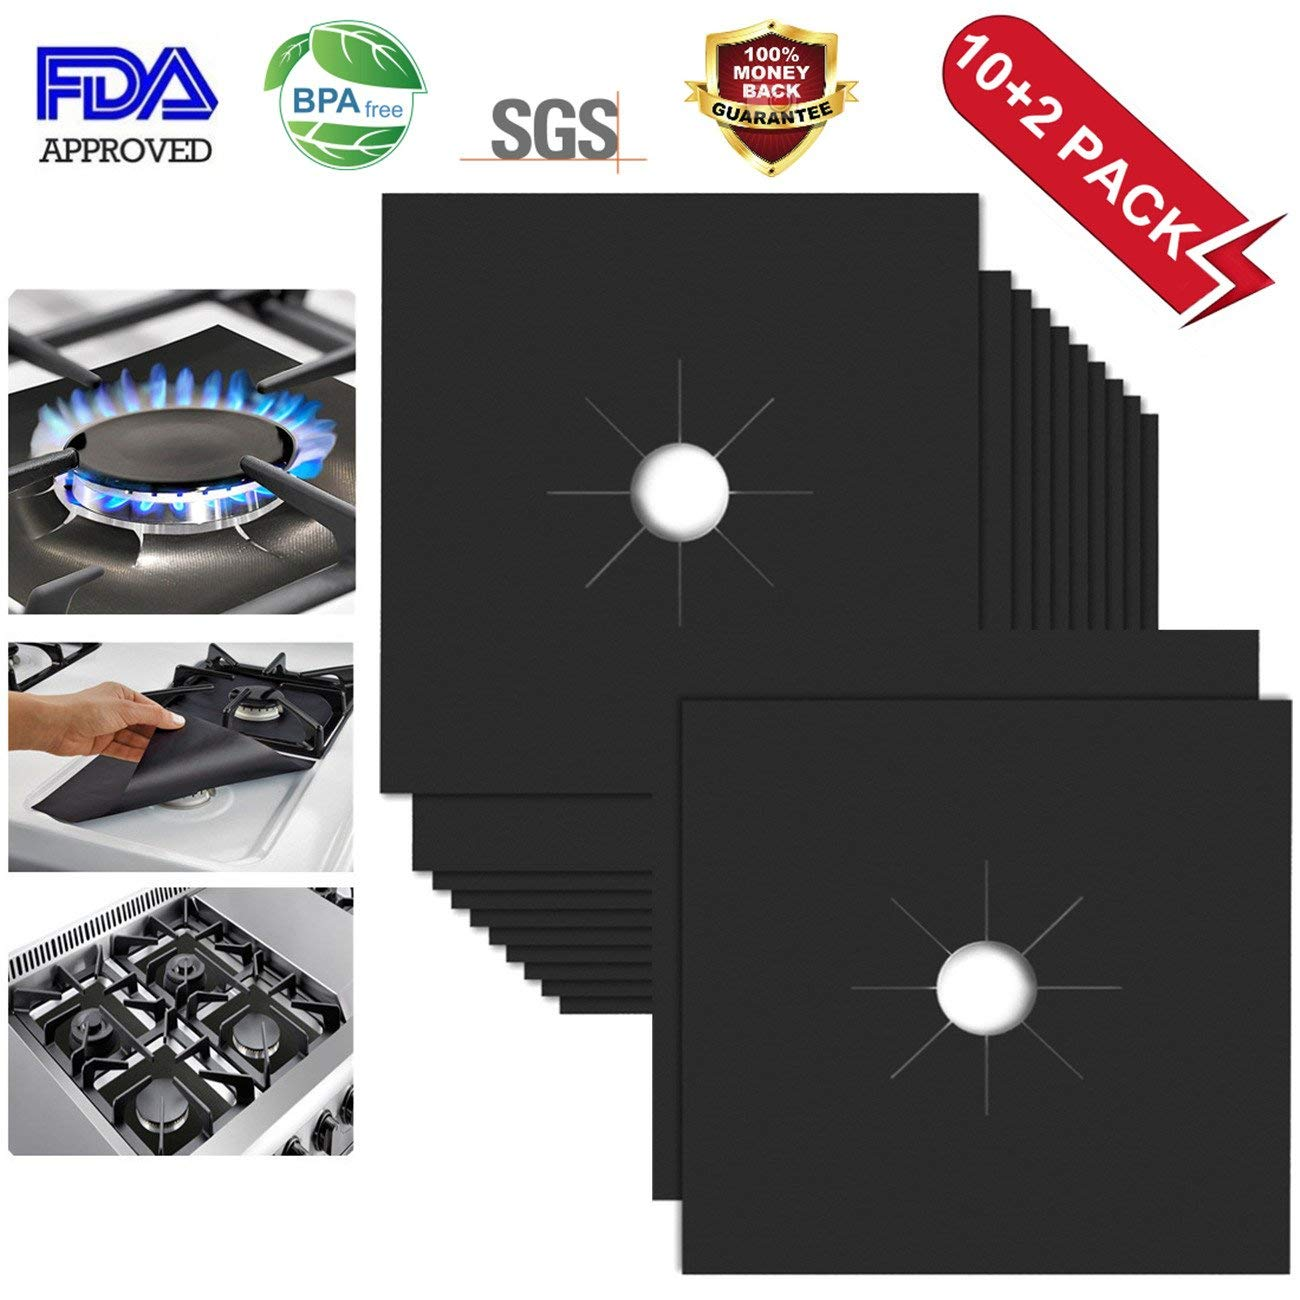 Cheap Gas Stove Top Find Gas Stove Top Deals On Line At Alibaba Com